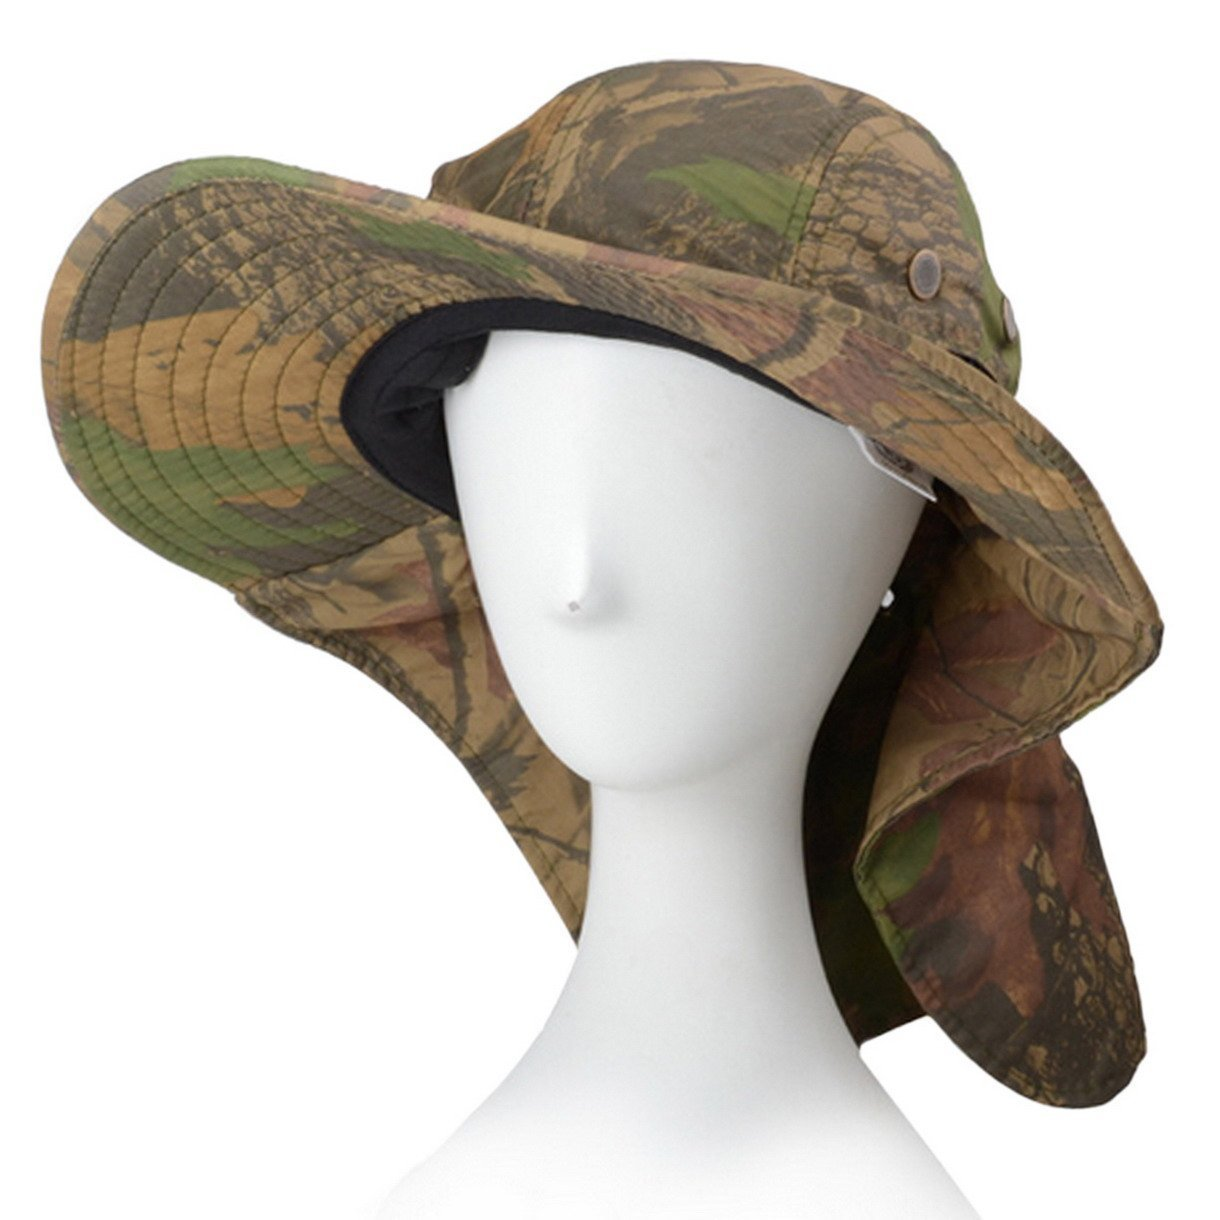 97a5adf51 Buy Panegy Outdoor Large Bill Flap Sun Hat Neck Ear Protection ...